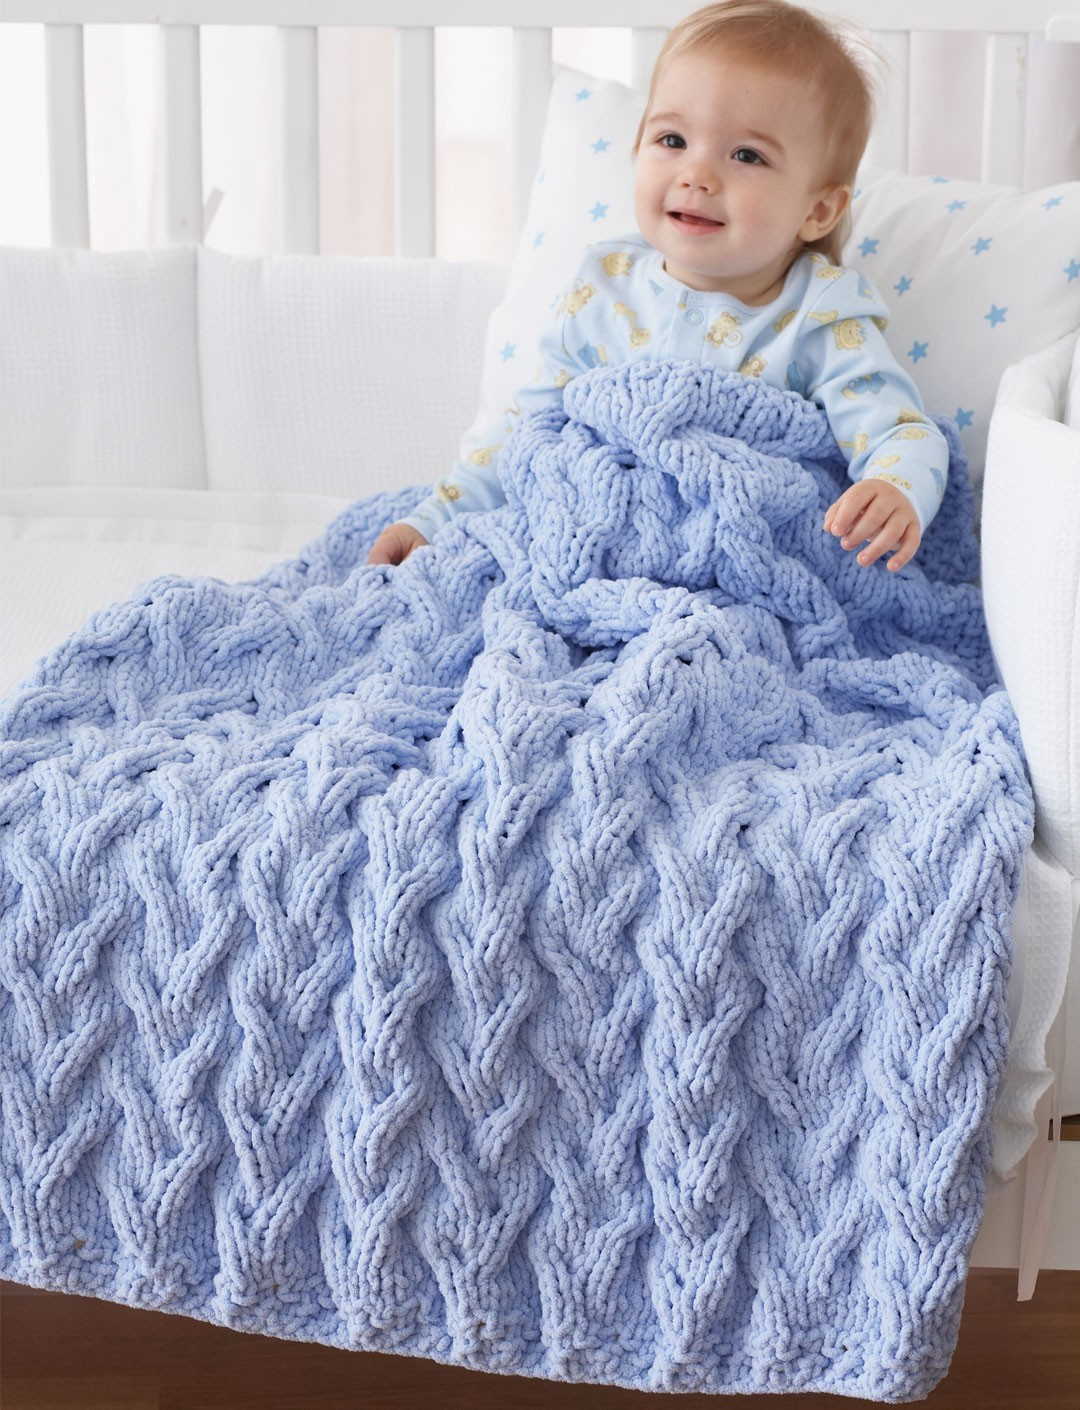 Bernat Baby Blanket Yarn Inspirational Bernat Baby Blanket Super Bulky Yarn Crochet Patterns Of Delightful 42 Models Bernat Baby Blanket Yarn